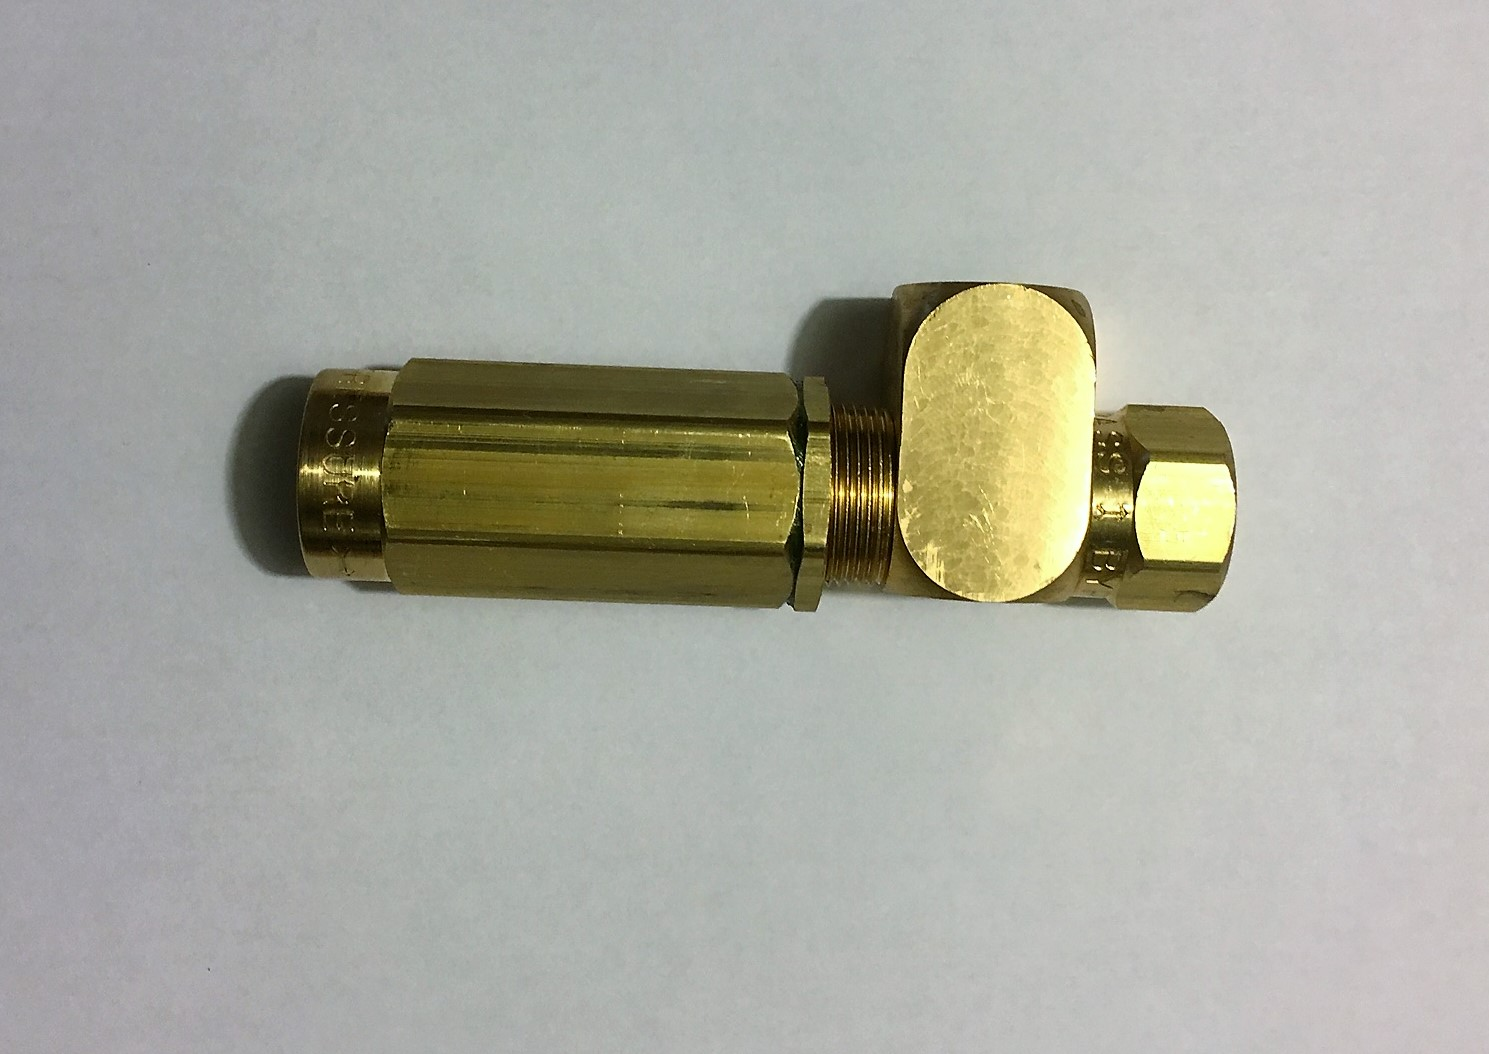 Inline Pressure Relief Valve W/O Coupling - Wildland Warehouse | Gear for Wildland Fire